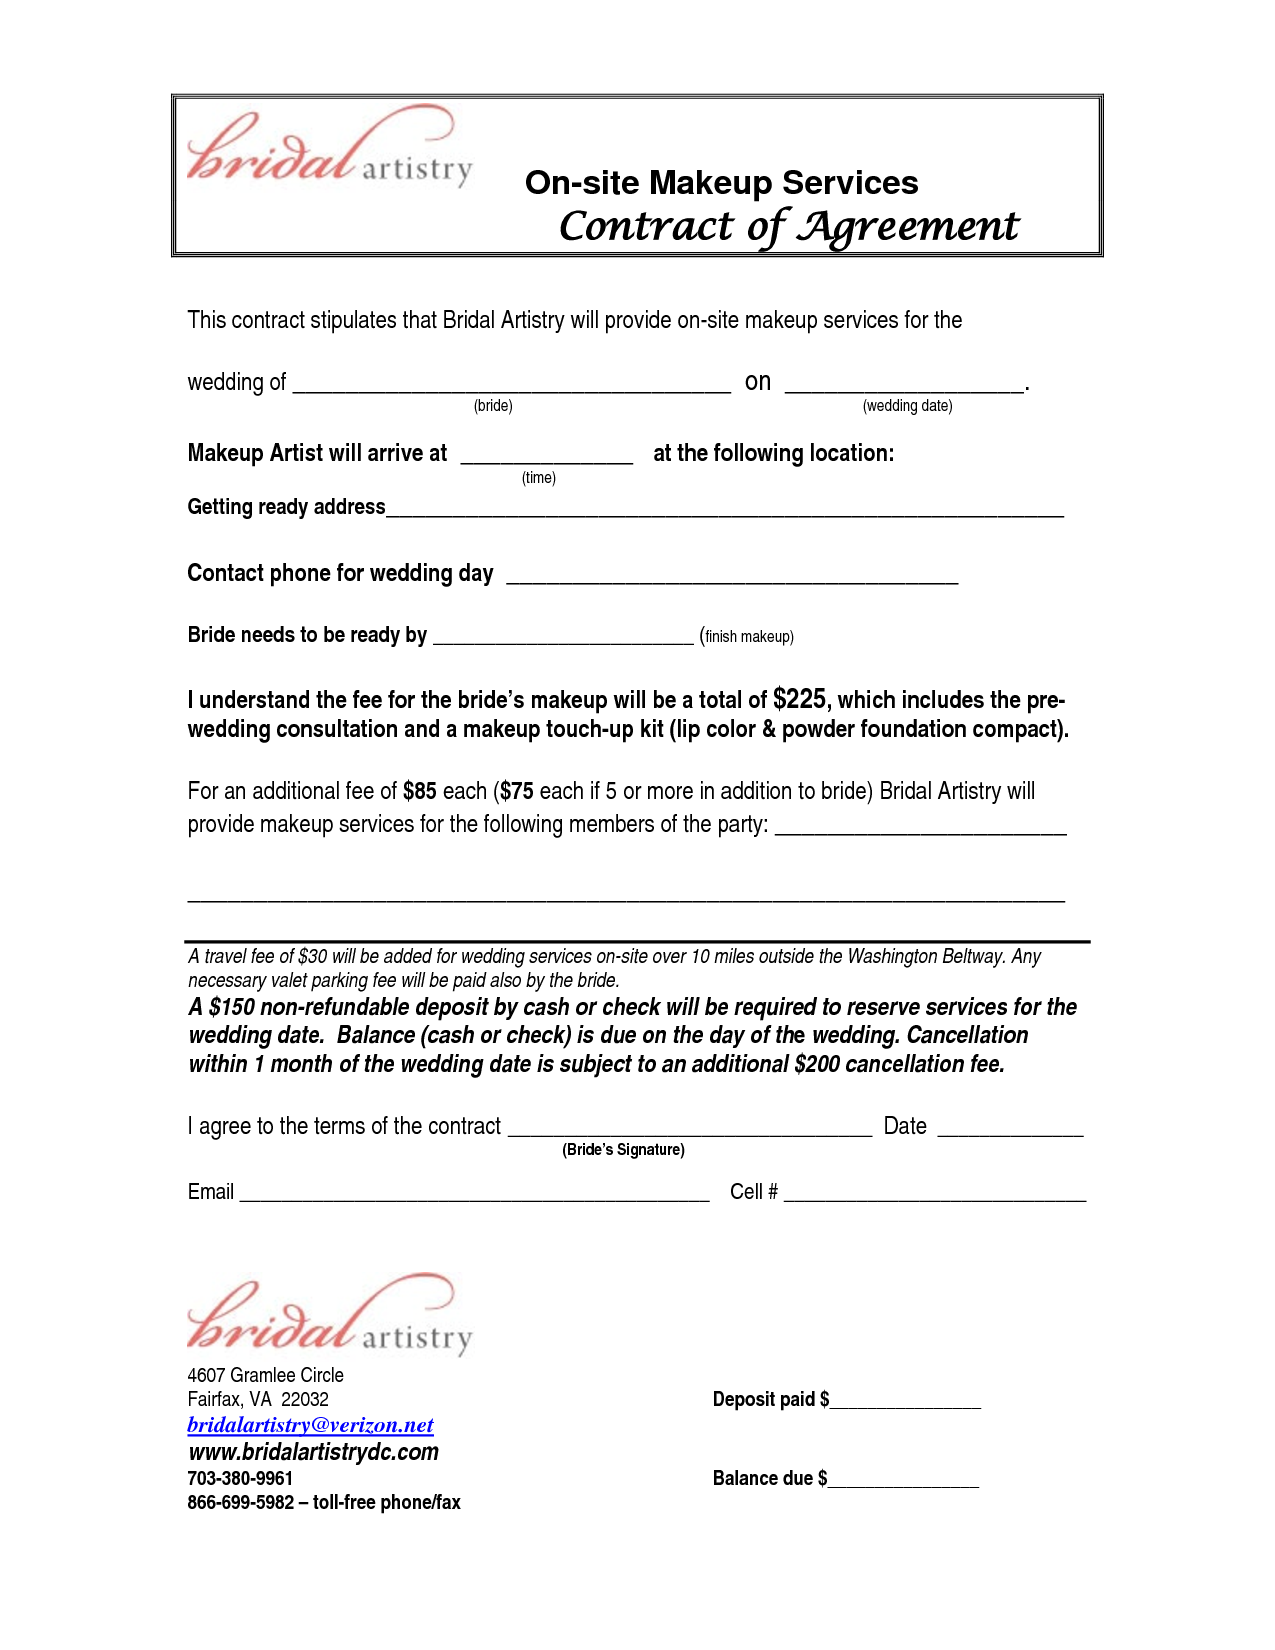 Freelance Makeup Artist · Bridalhaircotract | Site Makeup Services Contract  Agreement This Stipulates